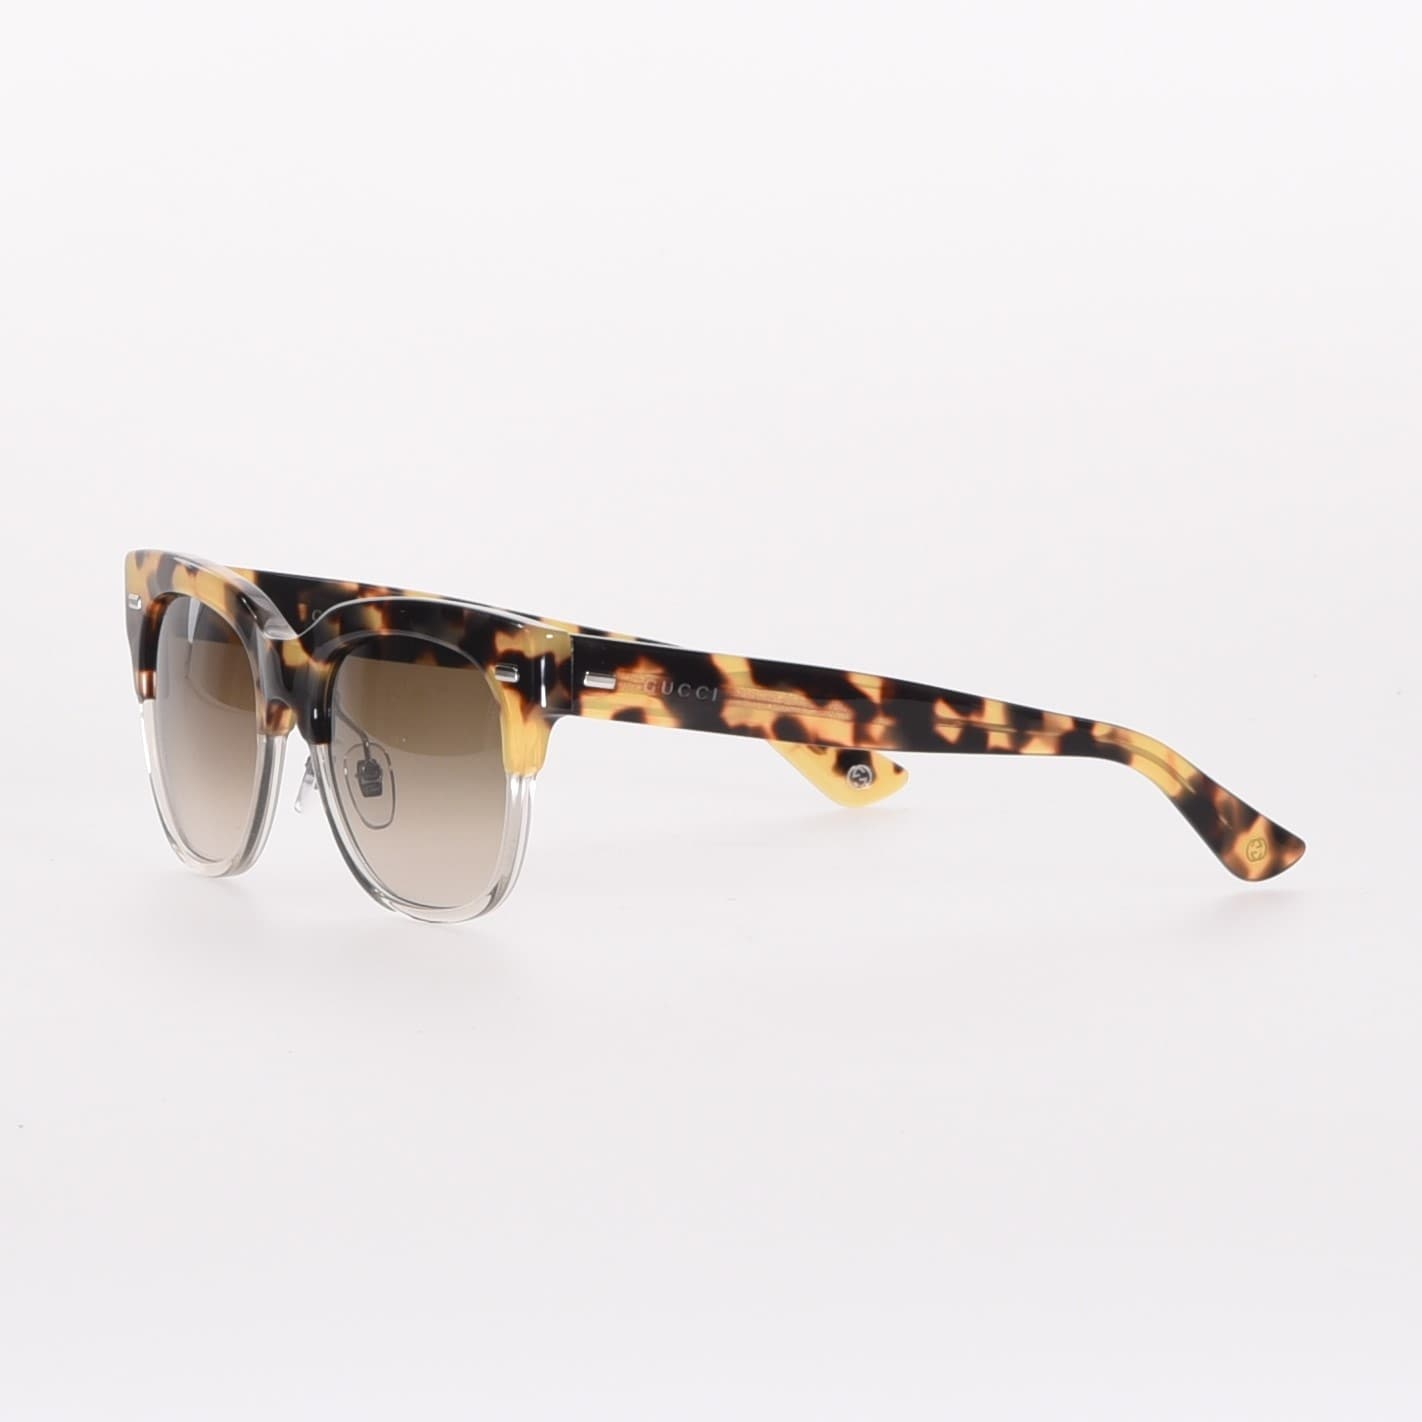 0731c34ef24f Shop Gucci GG3744 Wayfer Sunglasses in Browm and Gold Havana - One size - Free  Shipping Today - Overstock.com - 17952746